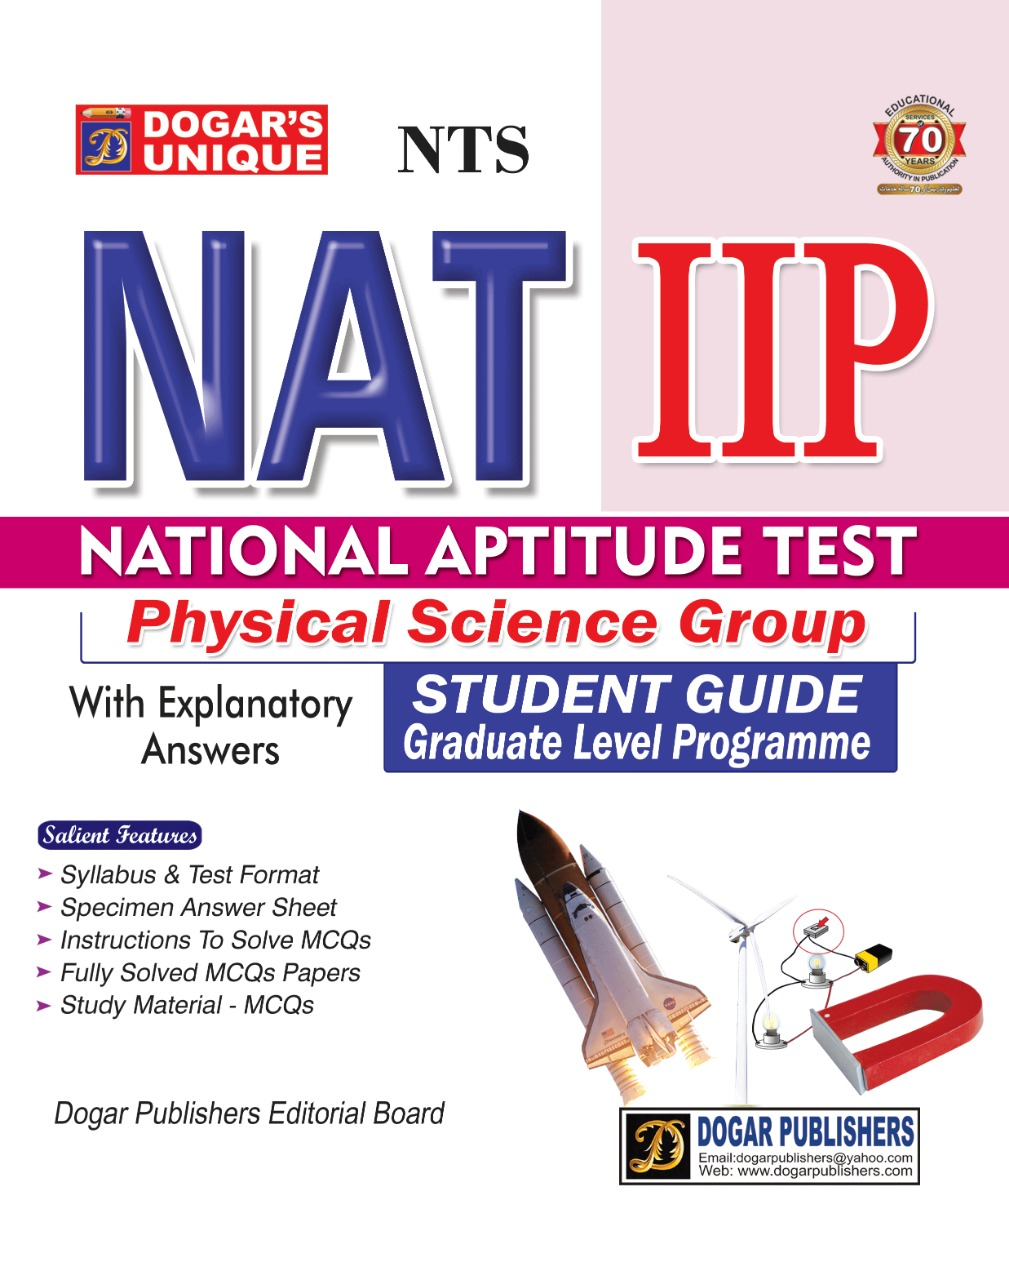 NTS NAT IIP (National Aptitude Test) Physical Science Group (Student Guide) Recruitment Test Guide Latest Edition 2019